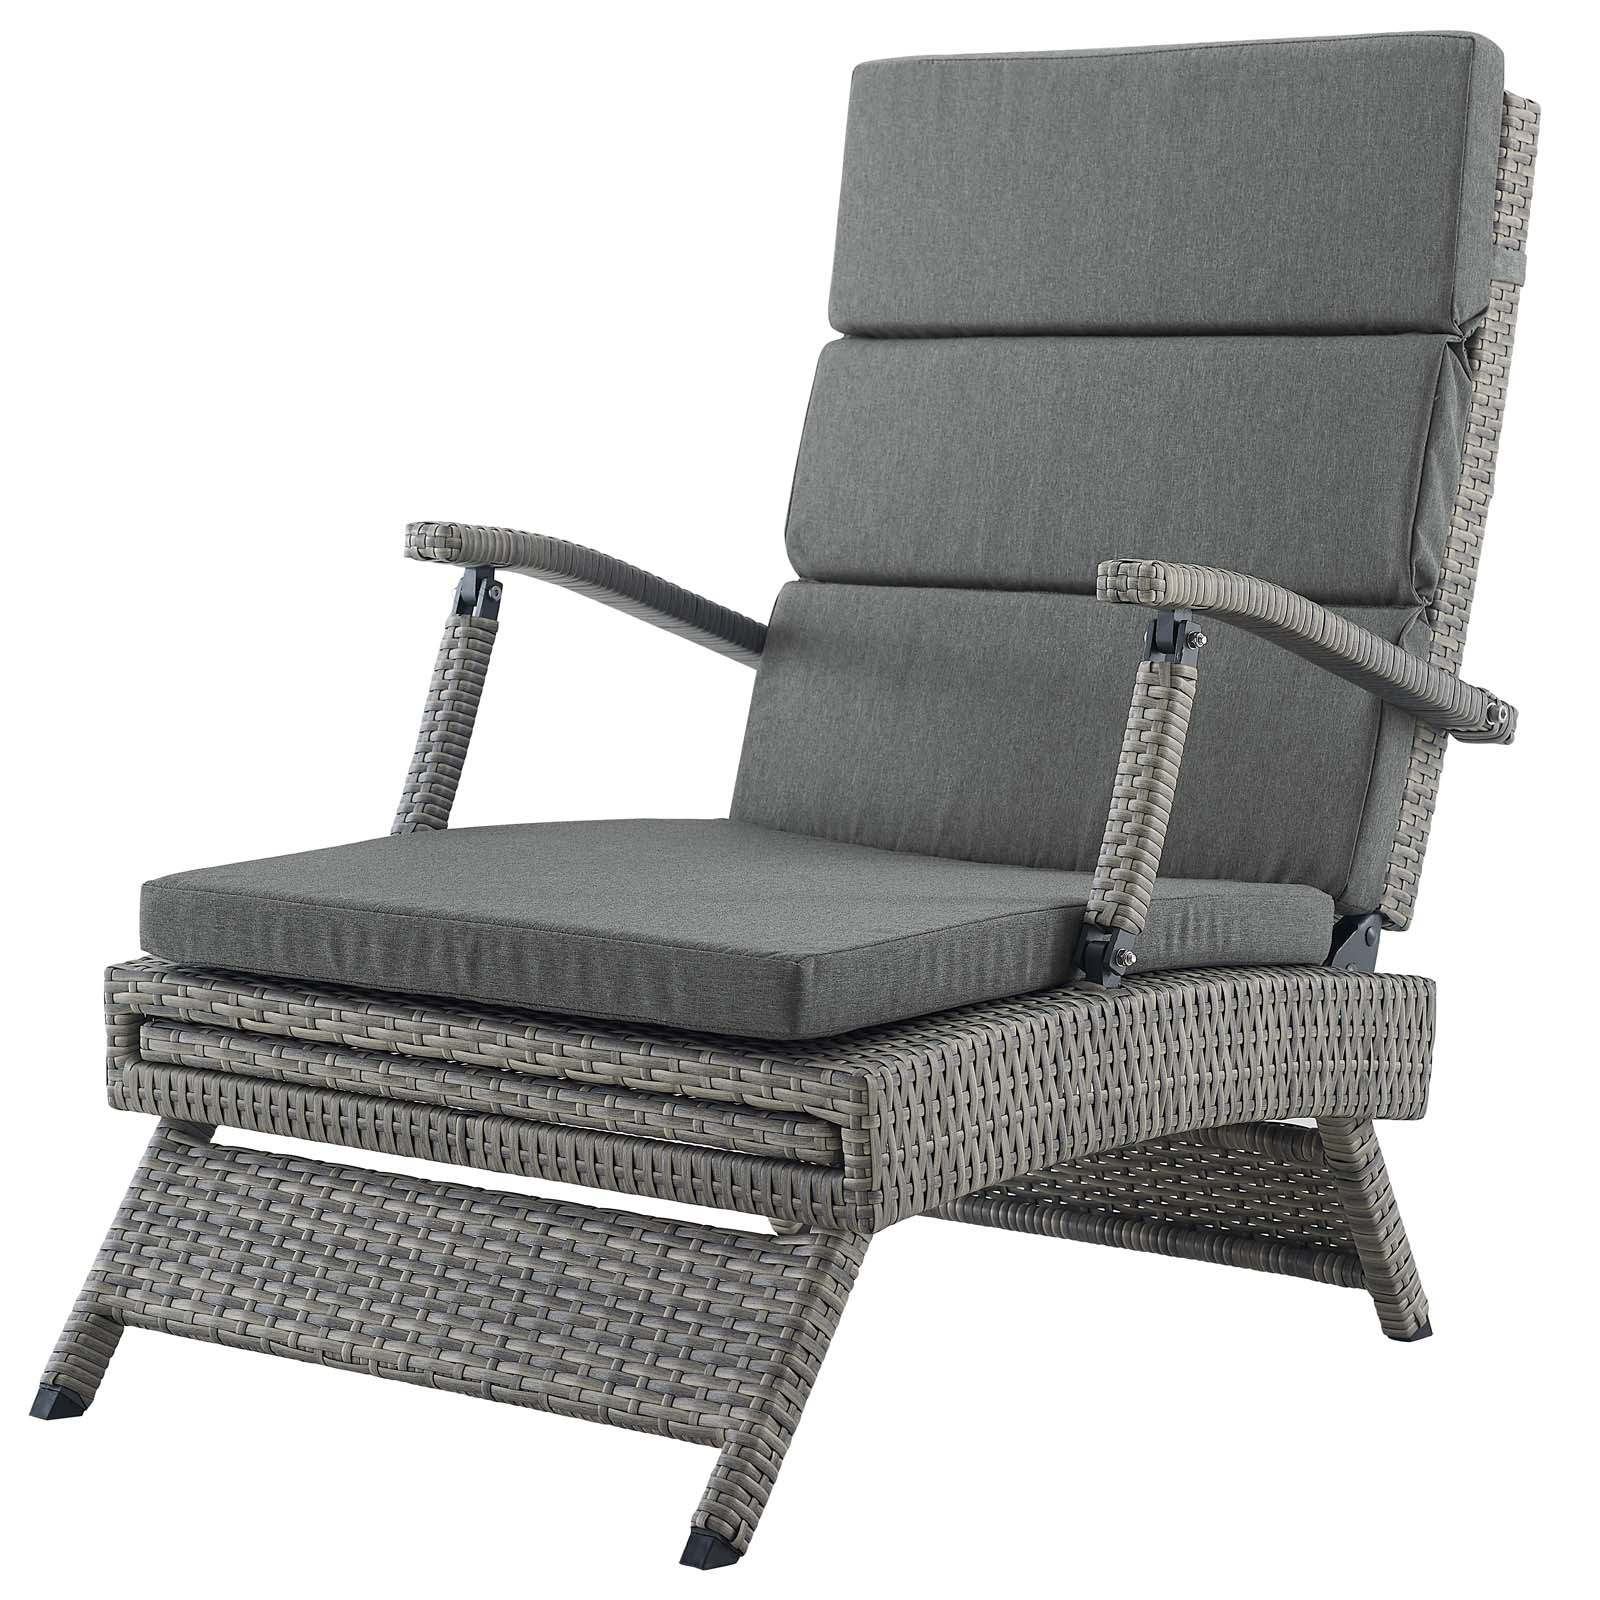 2019 Envisage Chaise Outdoor Patio Wicker Rattan Lounge Chairs Within Envisage Chaise Outdoor Patio Wicker Rattan Lounge Chair (View 4 of 25)